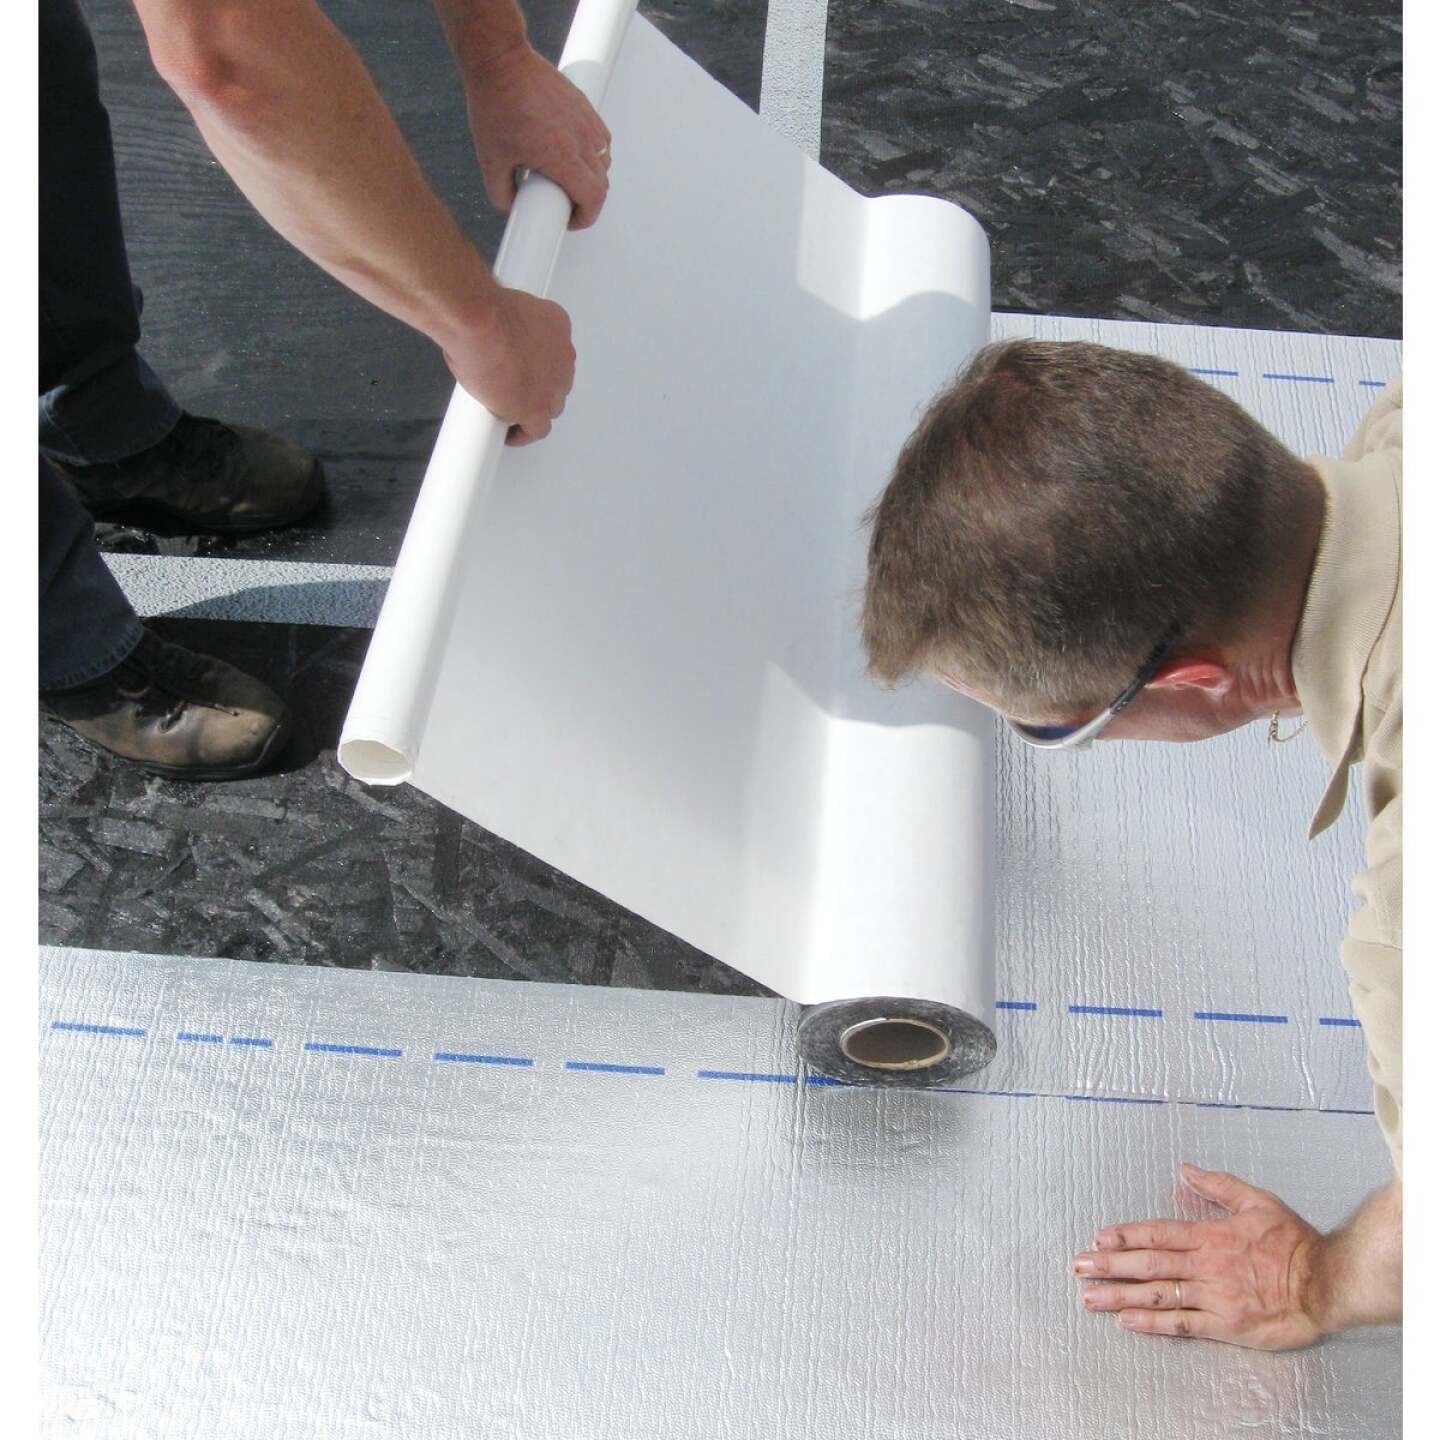 MFM Peel & Seal 36 In. X 33-1/2 Ft. Aluminum Roofing Membrane Image 4